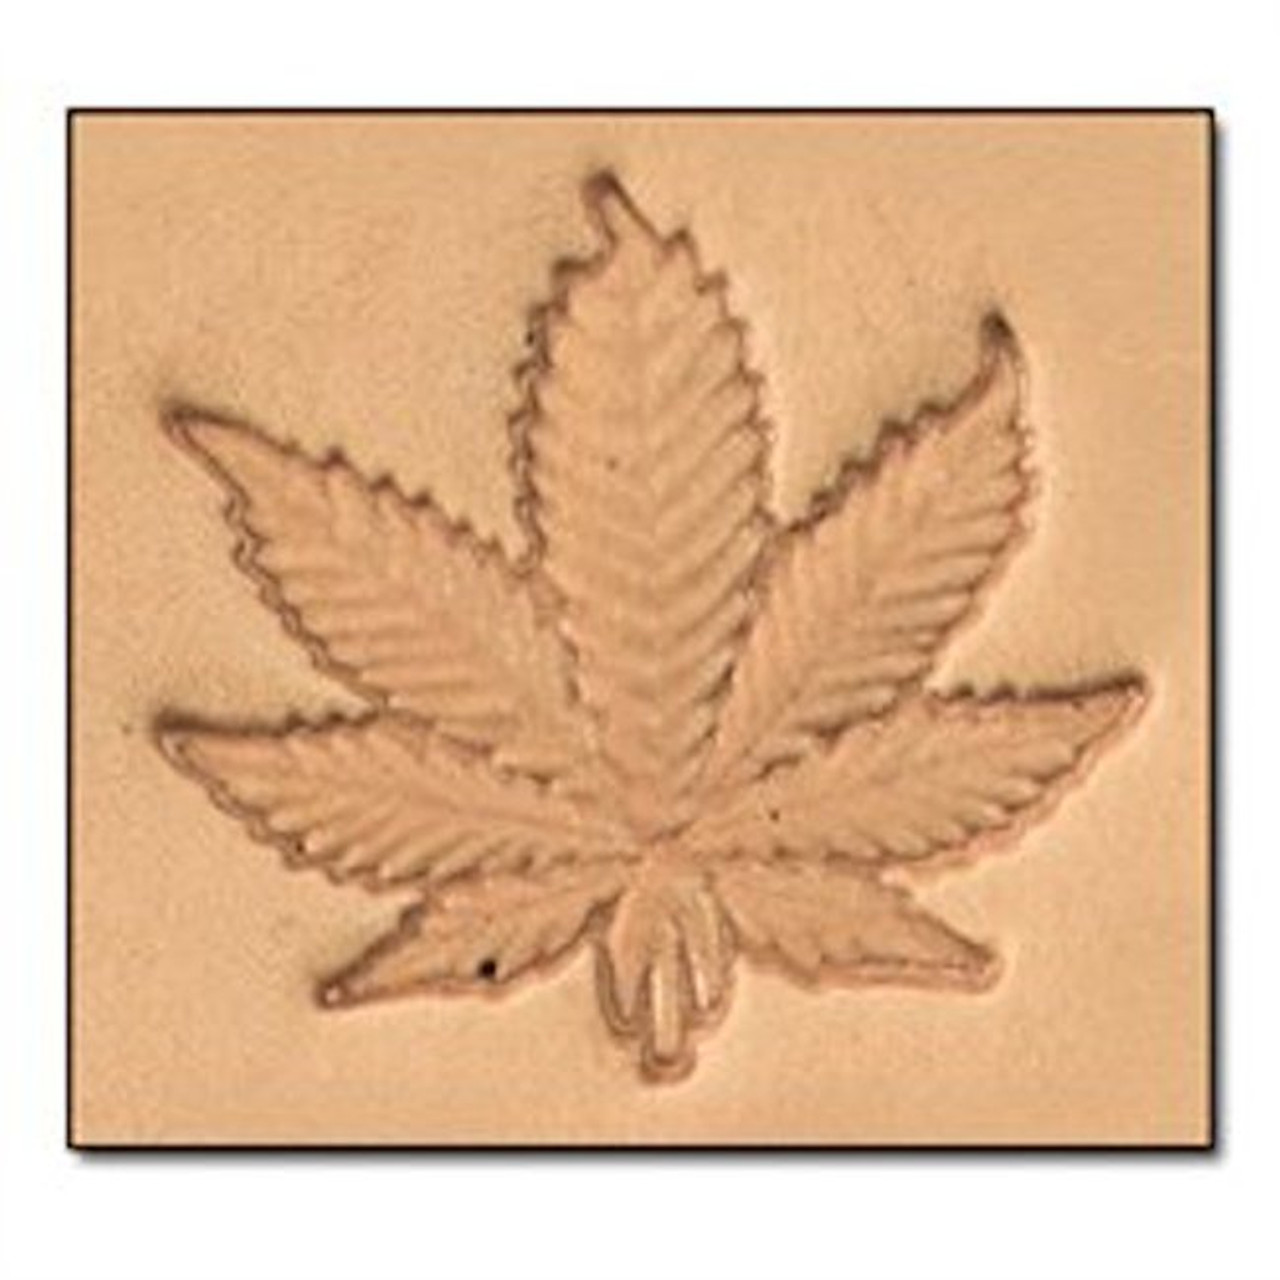 Craftool 3D Hemp Stamp 8619-00 by Tandy Leather